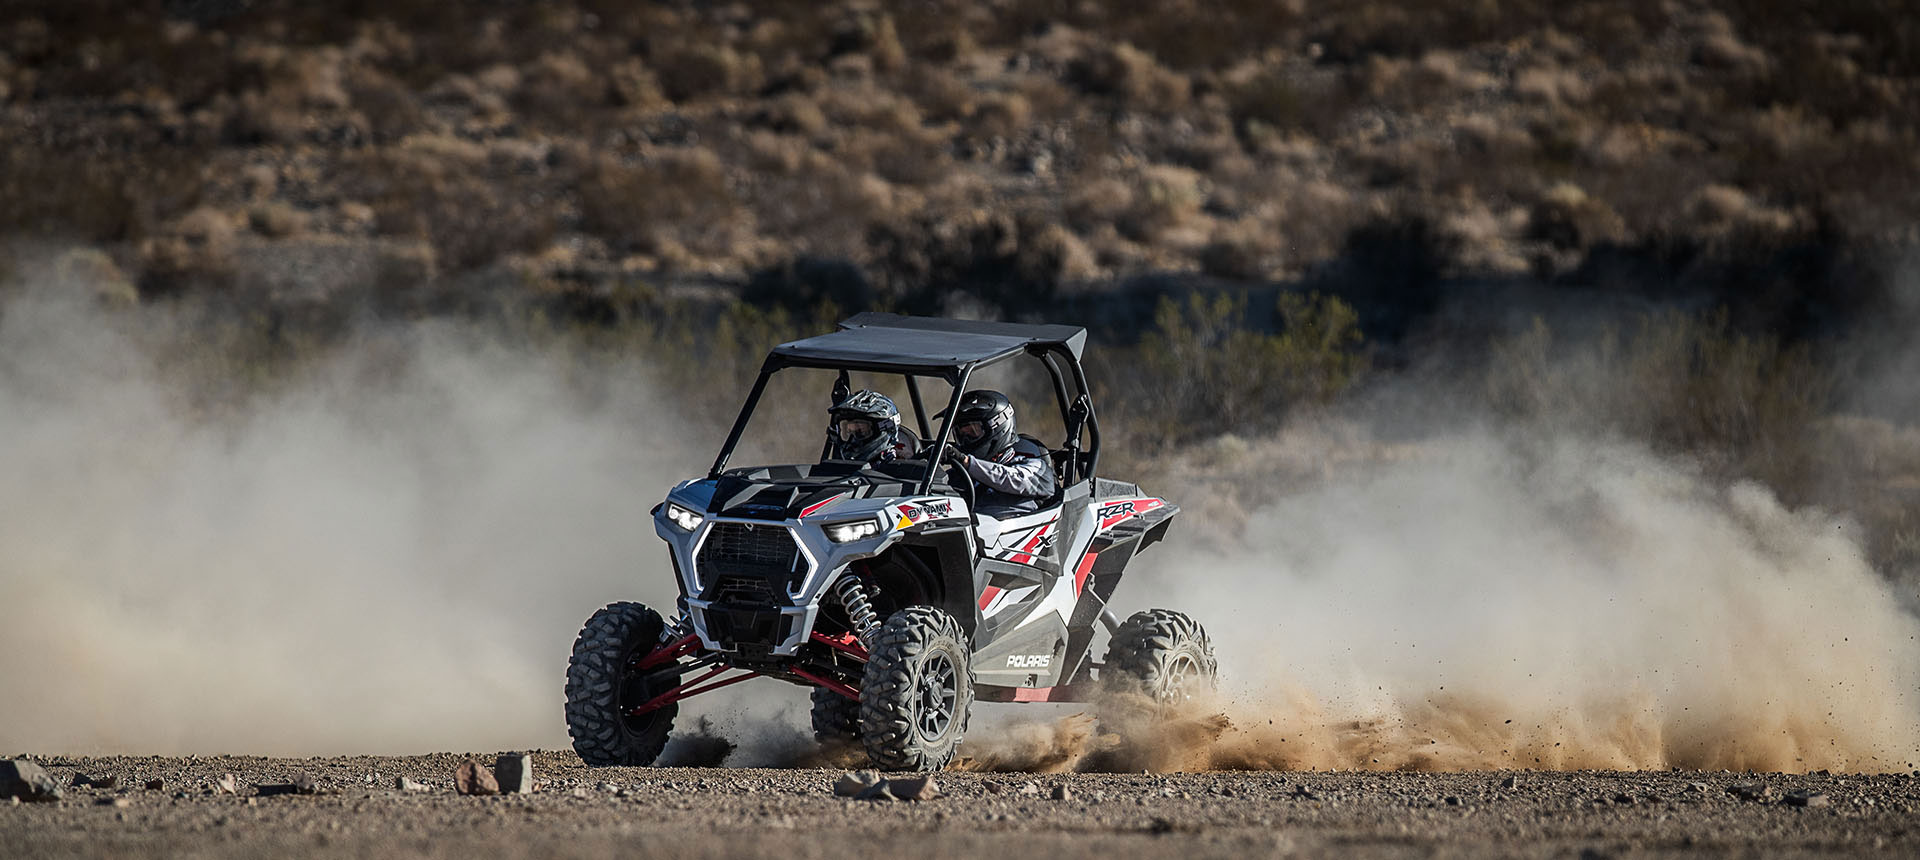 2019 Polaris RZR XP 1000 in Sterling, Illinois - Photo 7